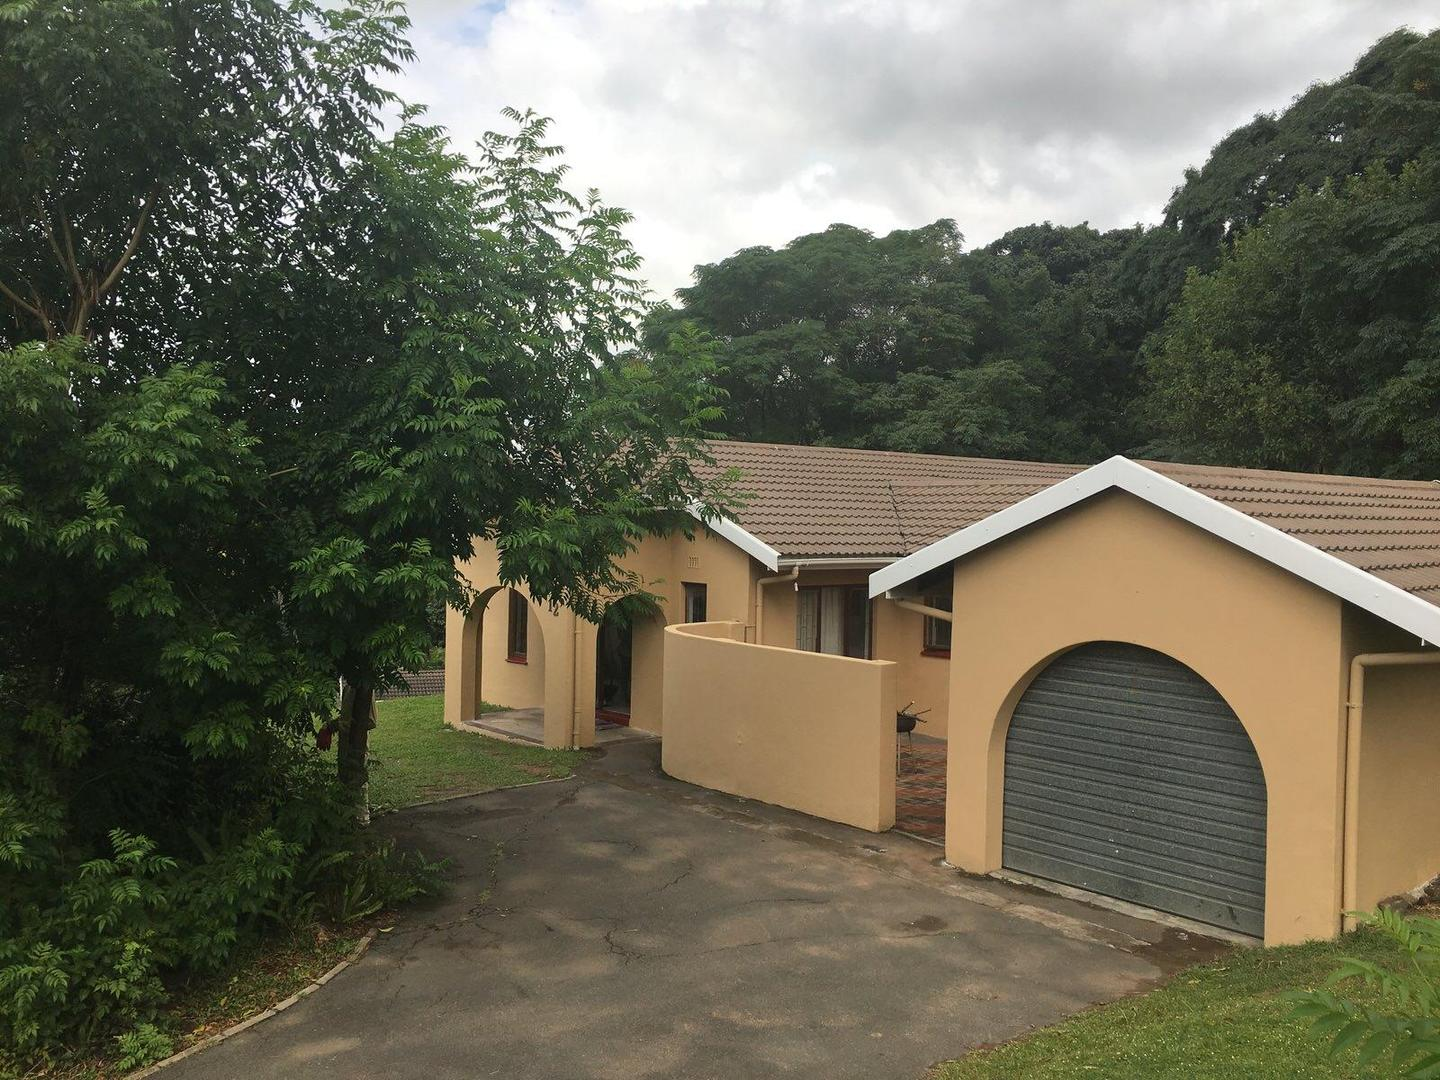 3 BedroomHouse For Sale In Moseley Park